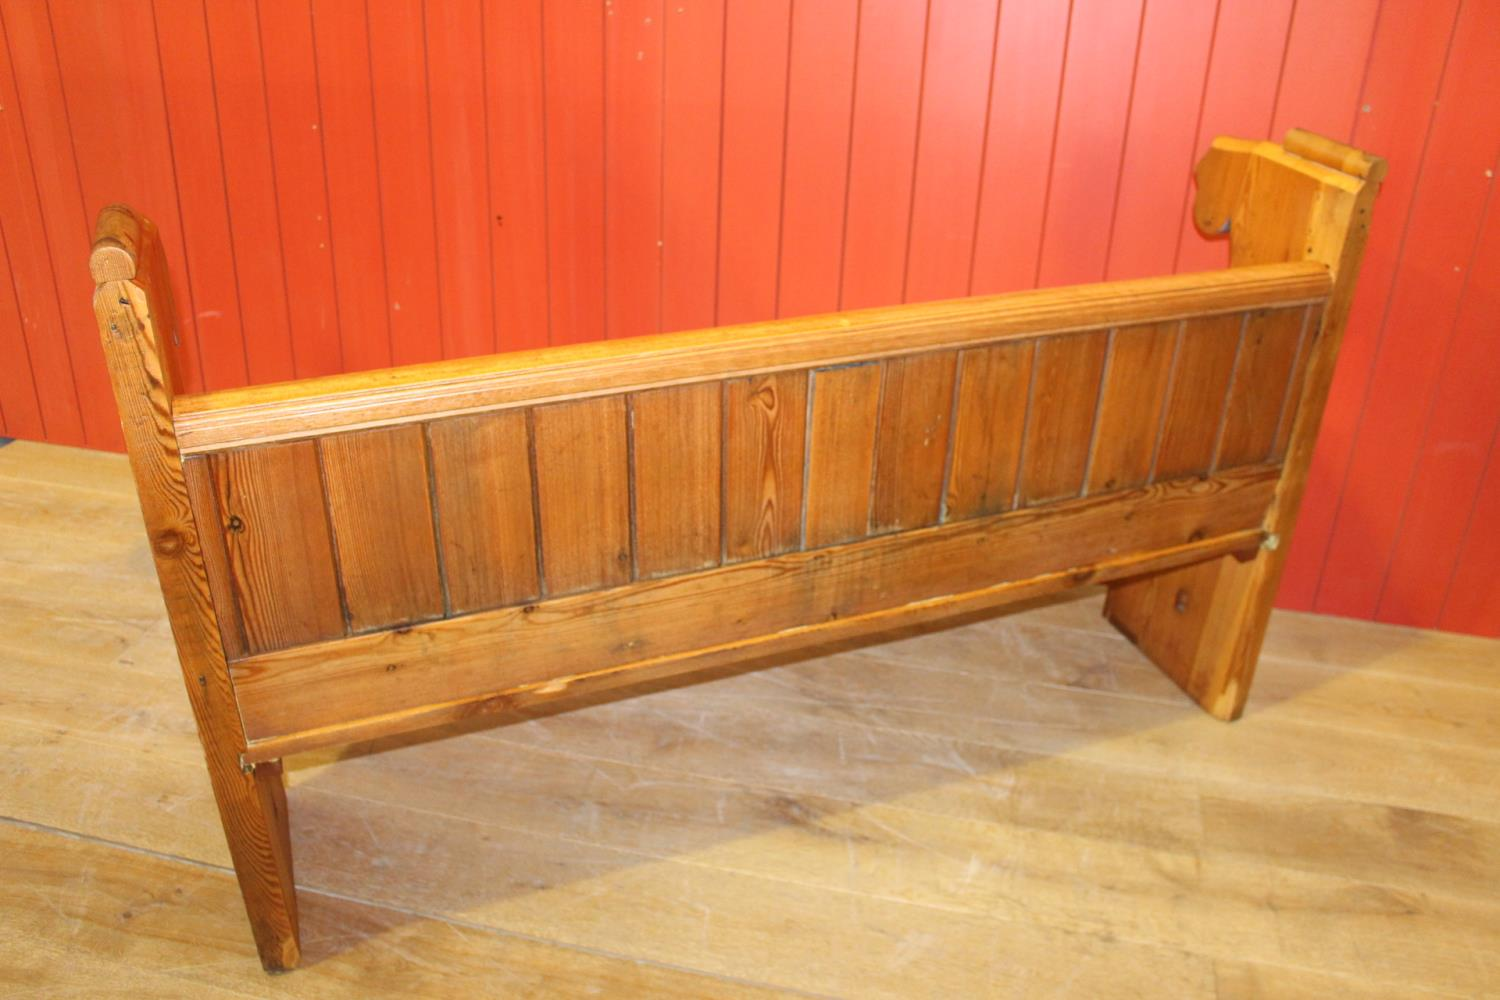 Pitch pine bench - Image 2 of 2